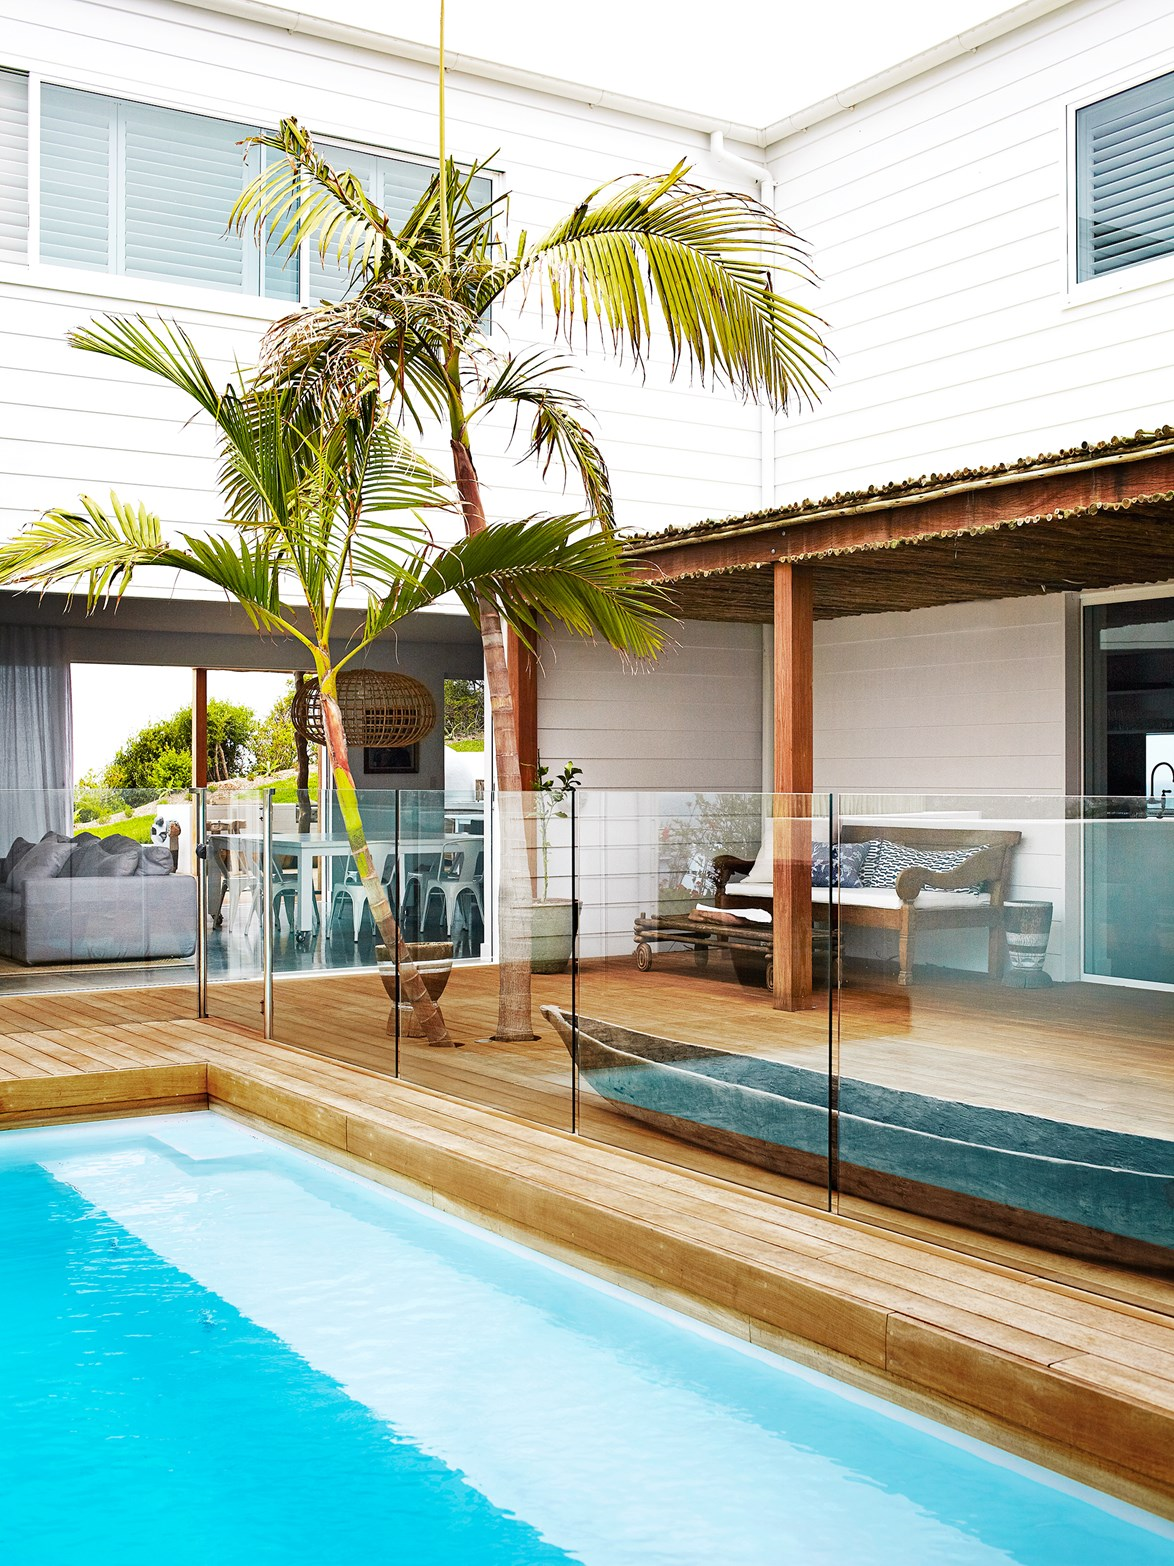 Built from scratch, this [contemporary weatherboard house](http://www.homestolove.com.au/weatherboard-home-with-wow-factor-3458) features a simple yet stylish beachy aesthetic with stunning ocean views.